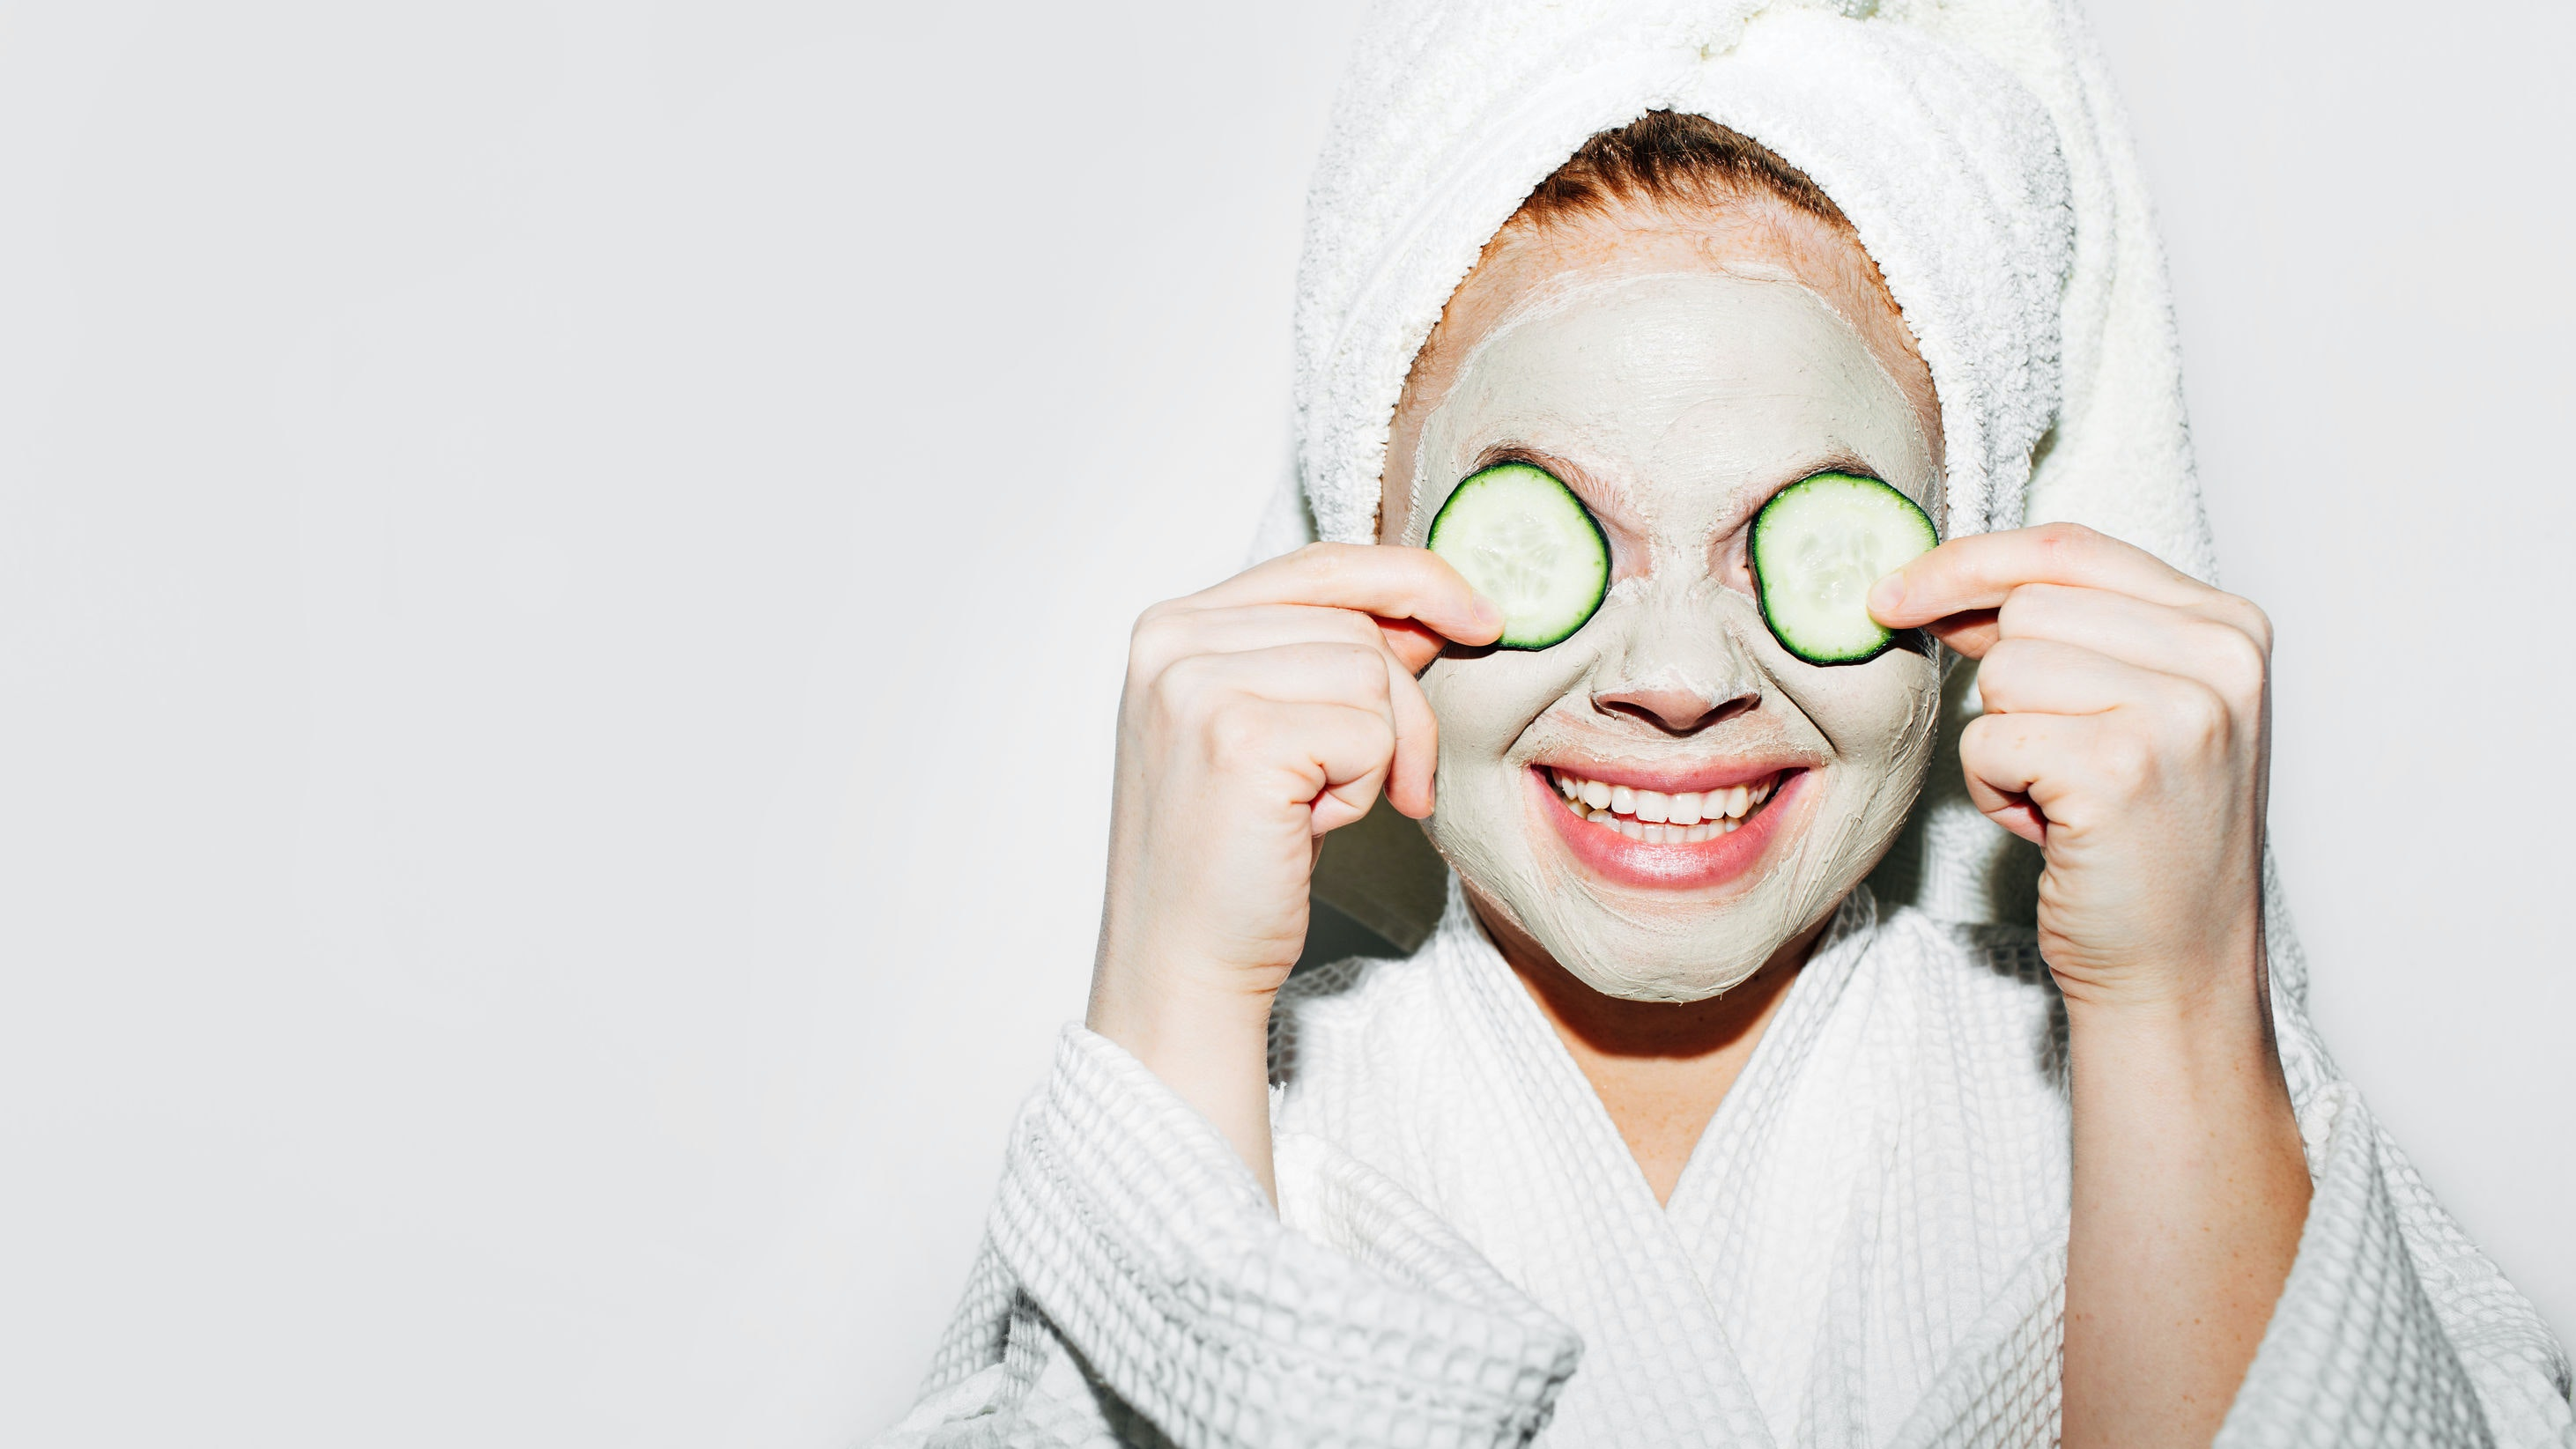 Woman putting cucumbers on her eyes